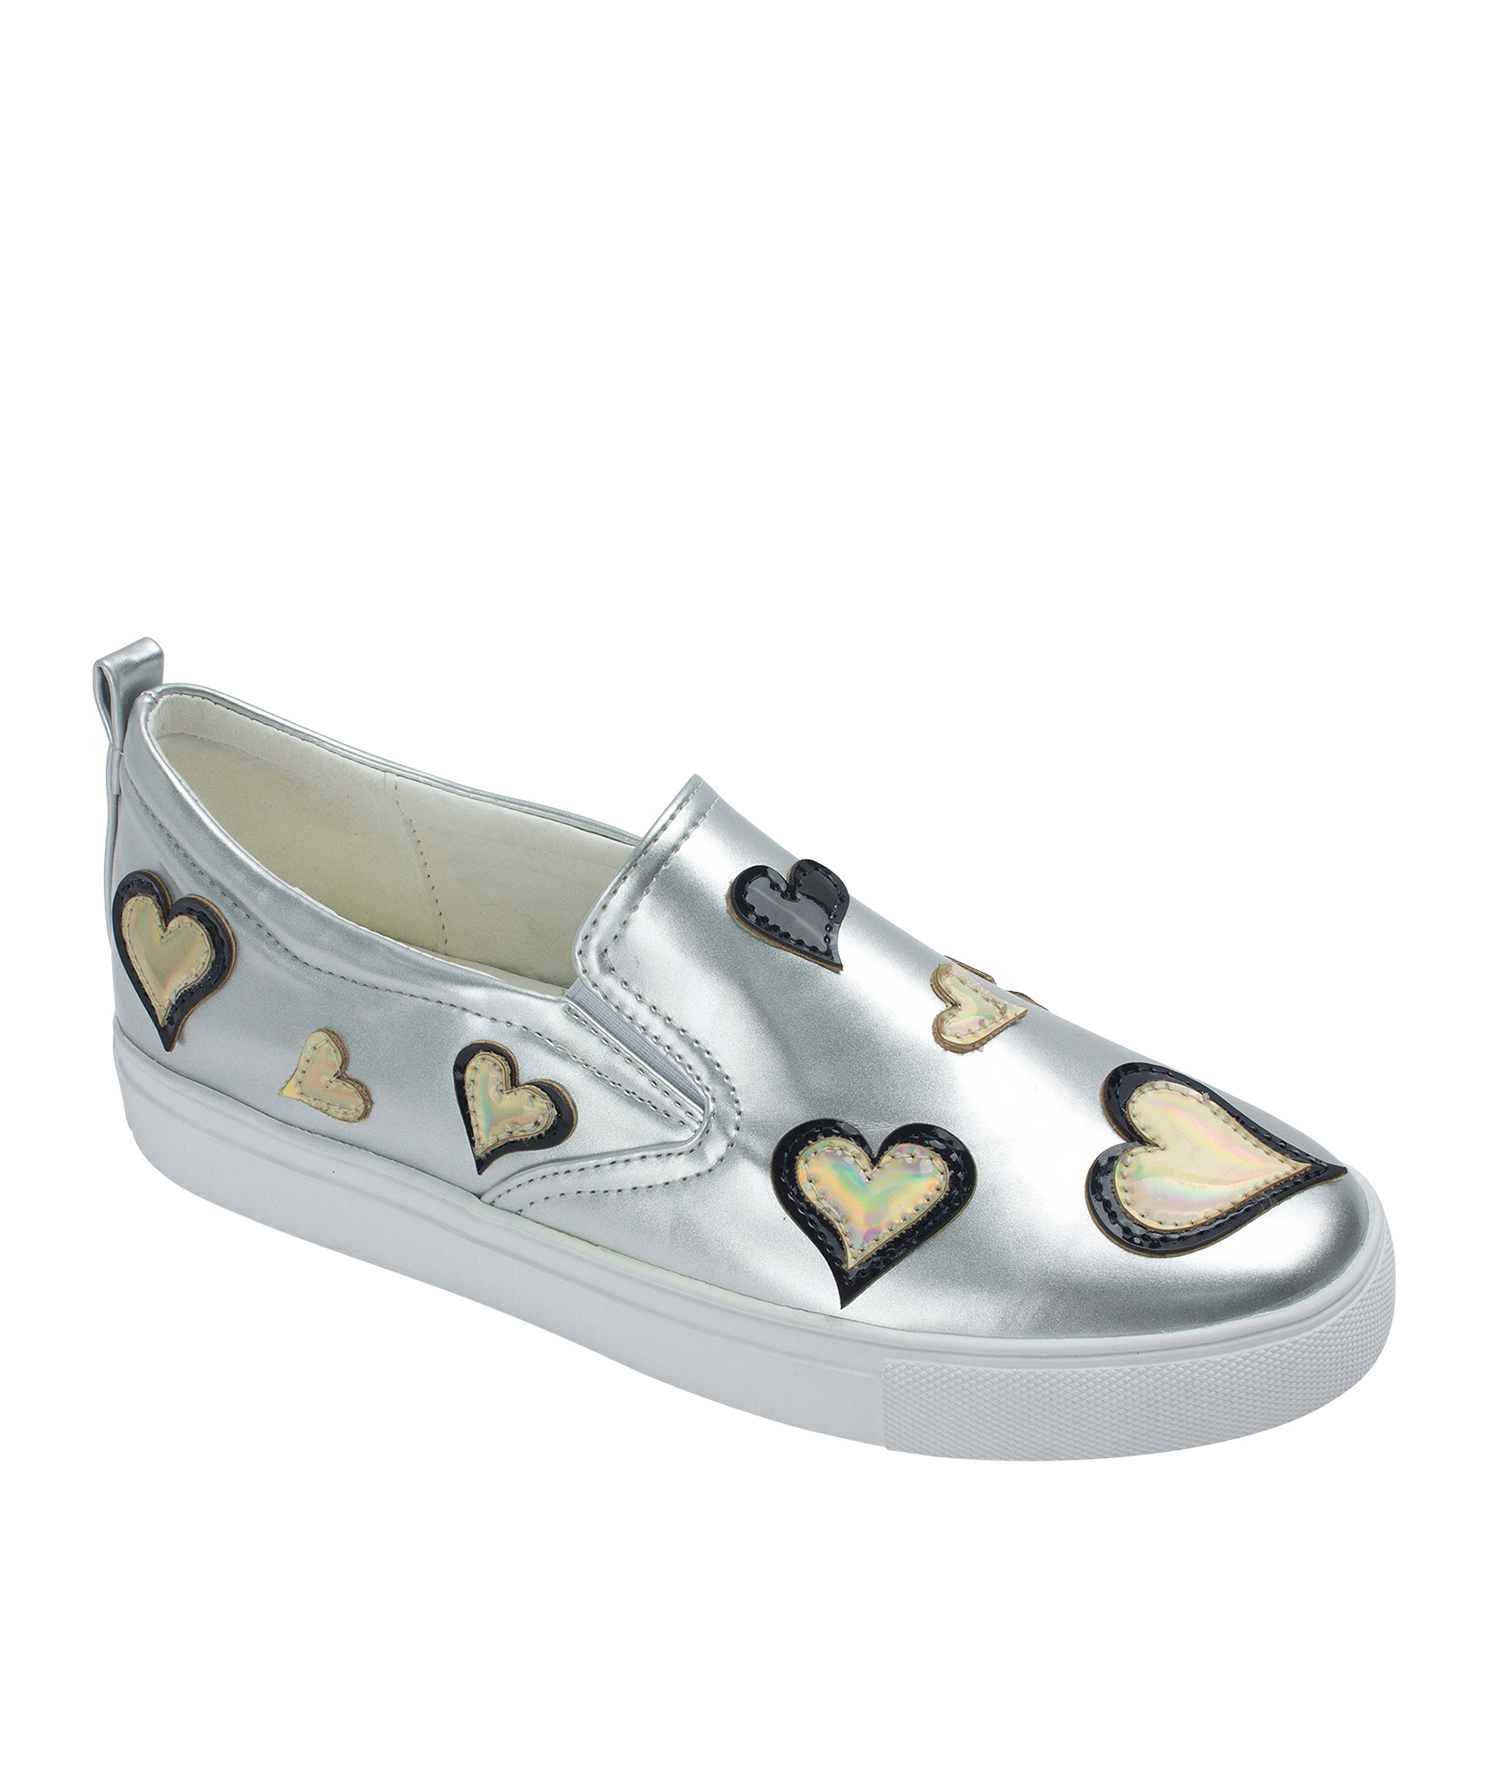 The Heart Slip-On Sneakers